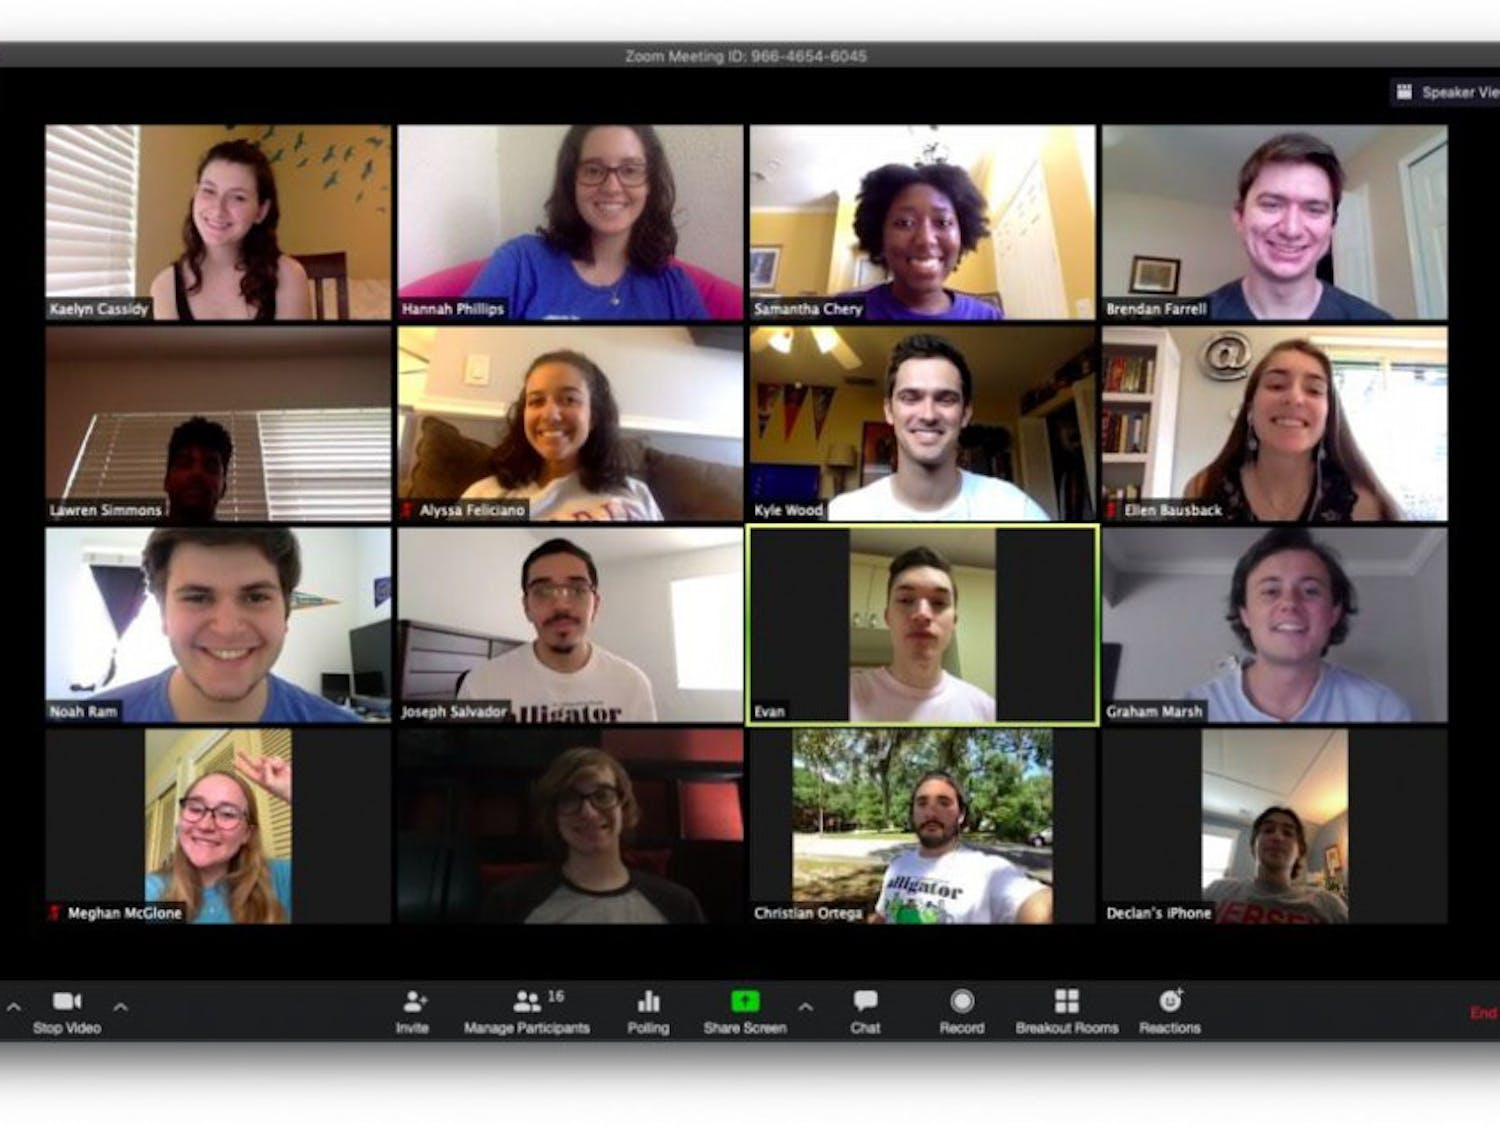 Alligator staff from the Spring 2020 semester pose for a photo during a Zoom meeting. The incoming Summer 2020 staff reports remotely and communicates using the video conferencing service.